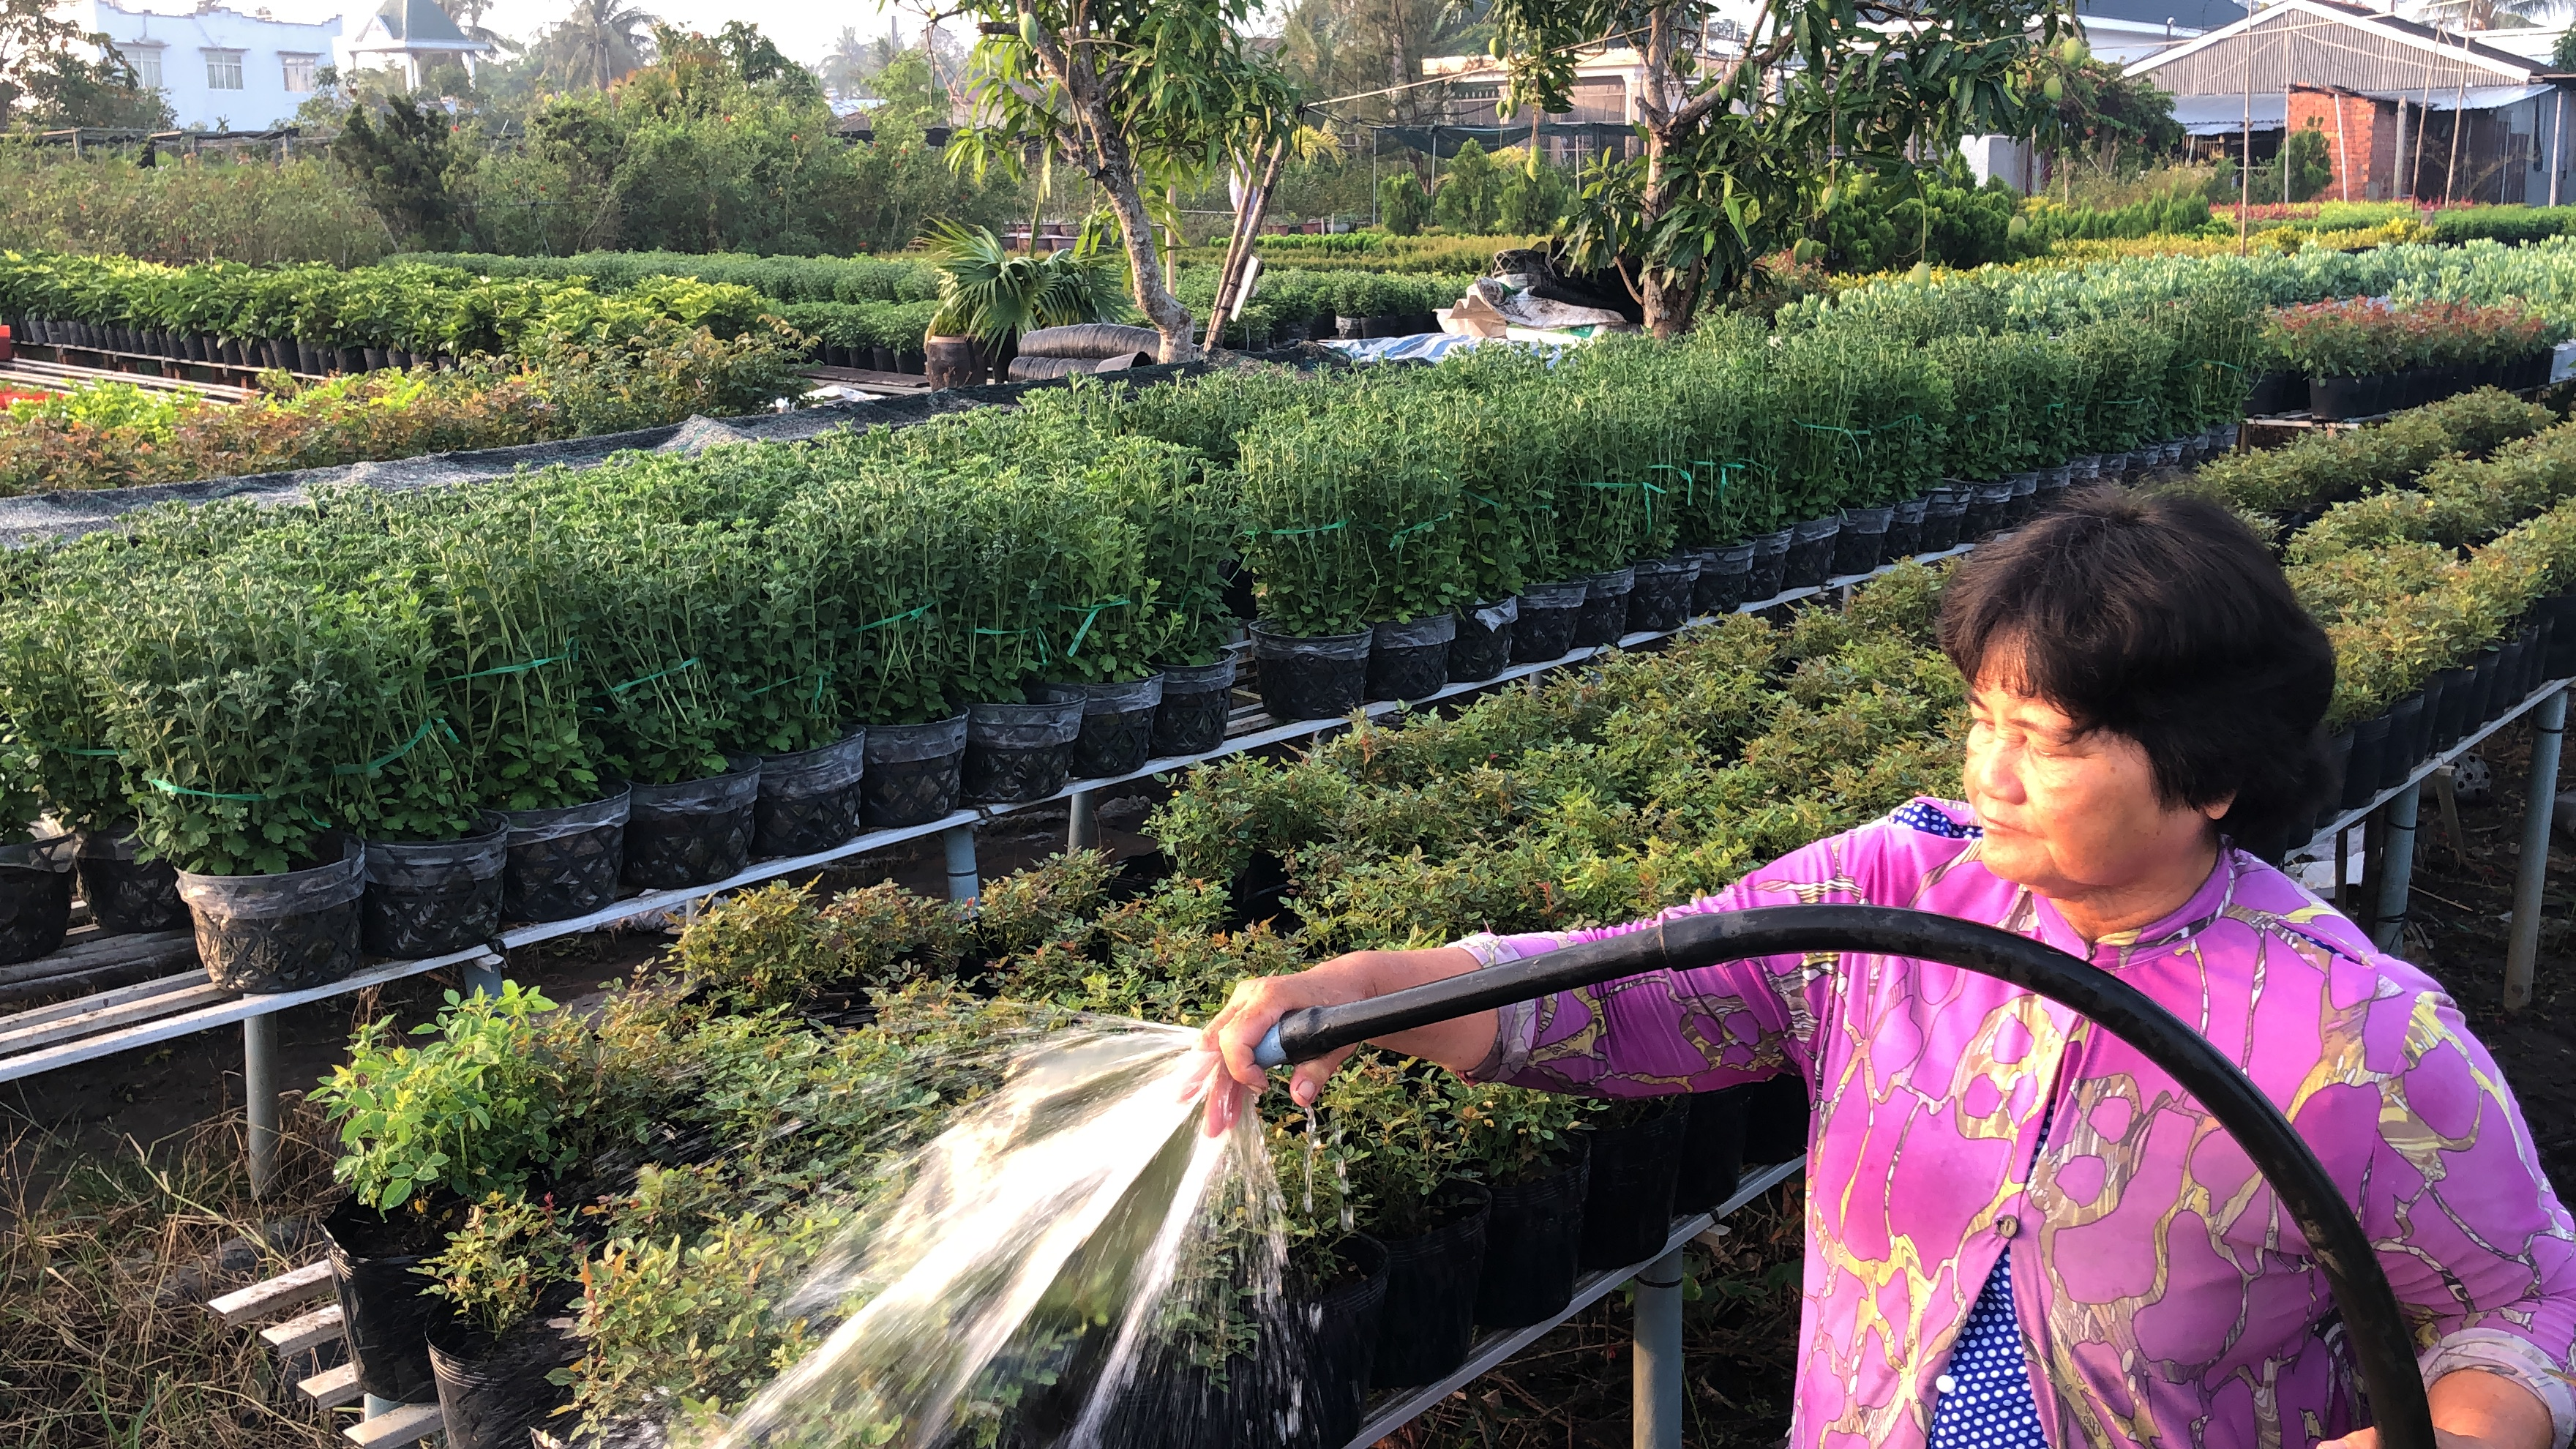 A villager waters her the plants at the Tan Quy Dong flower neighborhood in Sa Dec City, Dong Thap Province, southern Vietnam. Photo: Hong Van